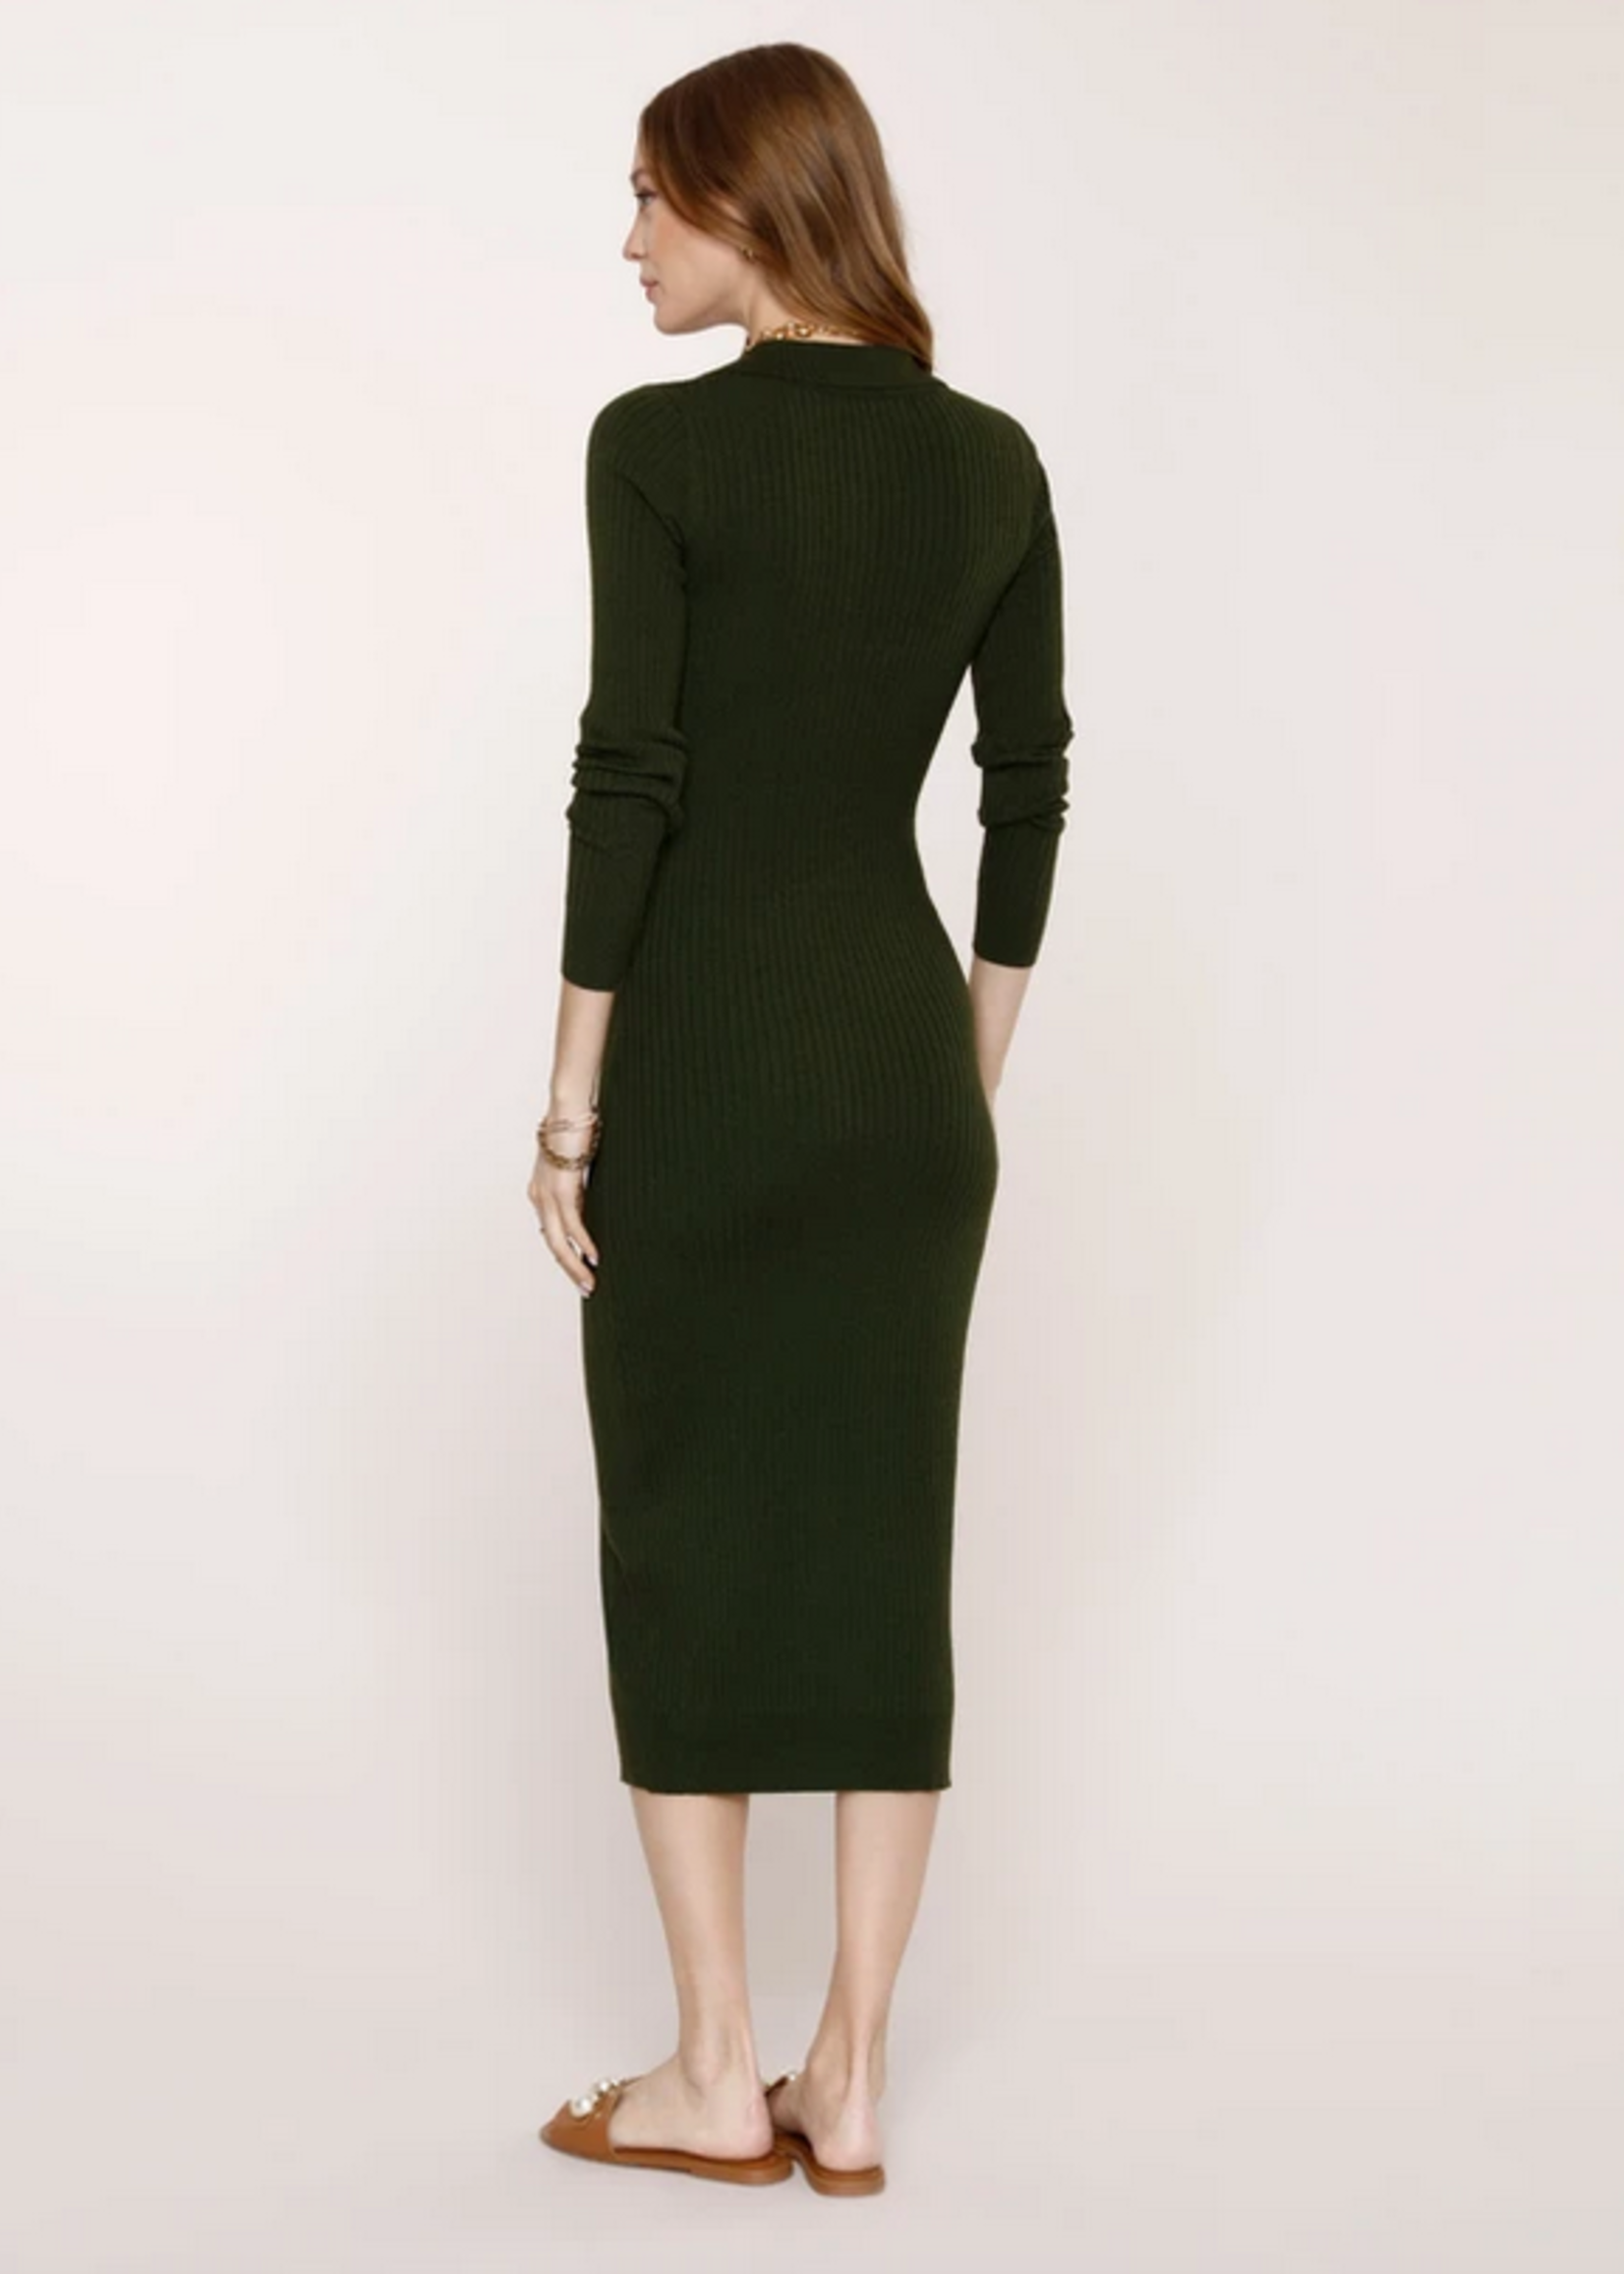 Elitaire Boutique Dahlia Dress in Army